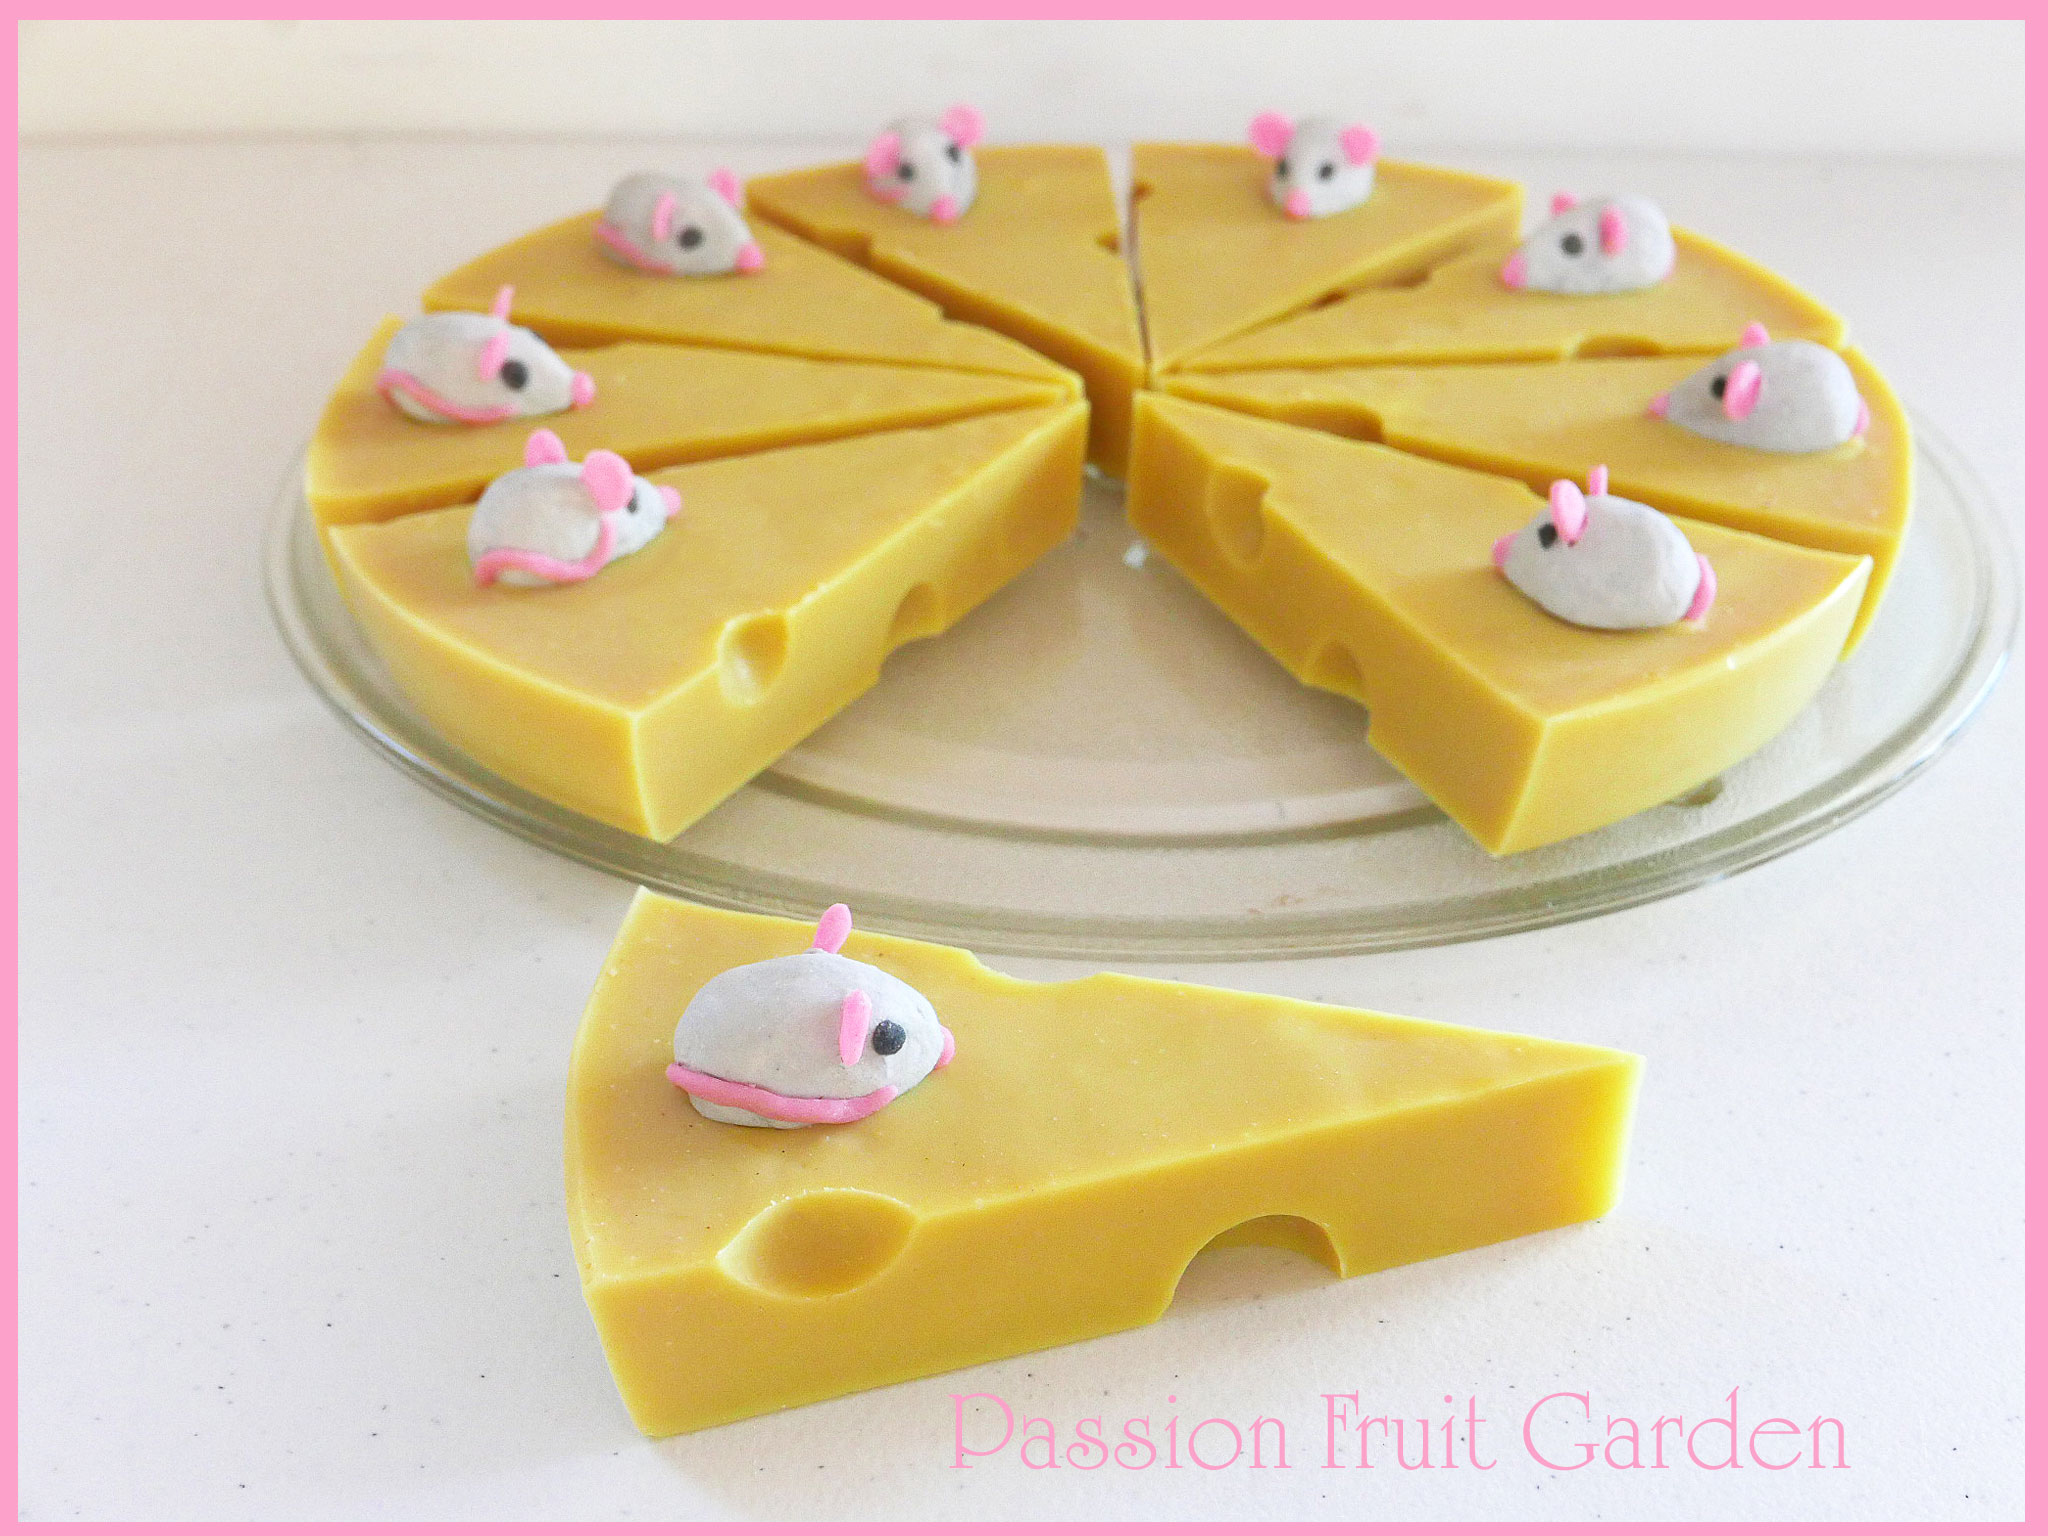 Cold process soap design ideas | Passion Fruit Garden